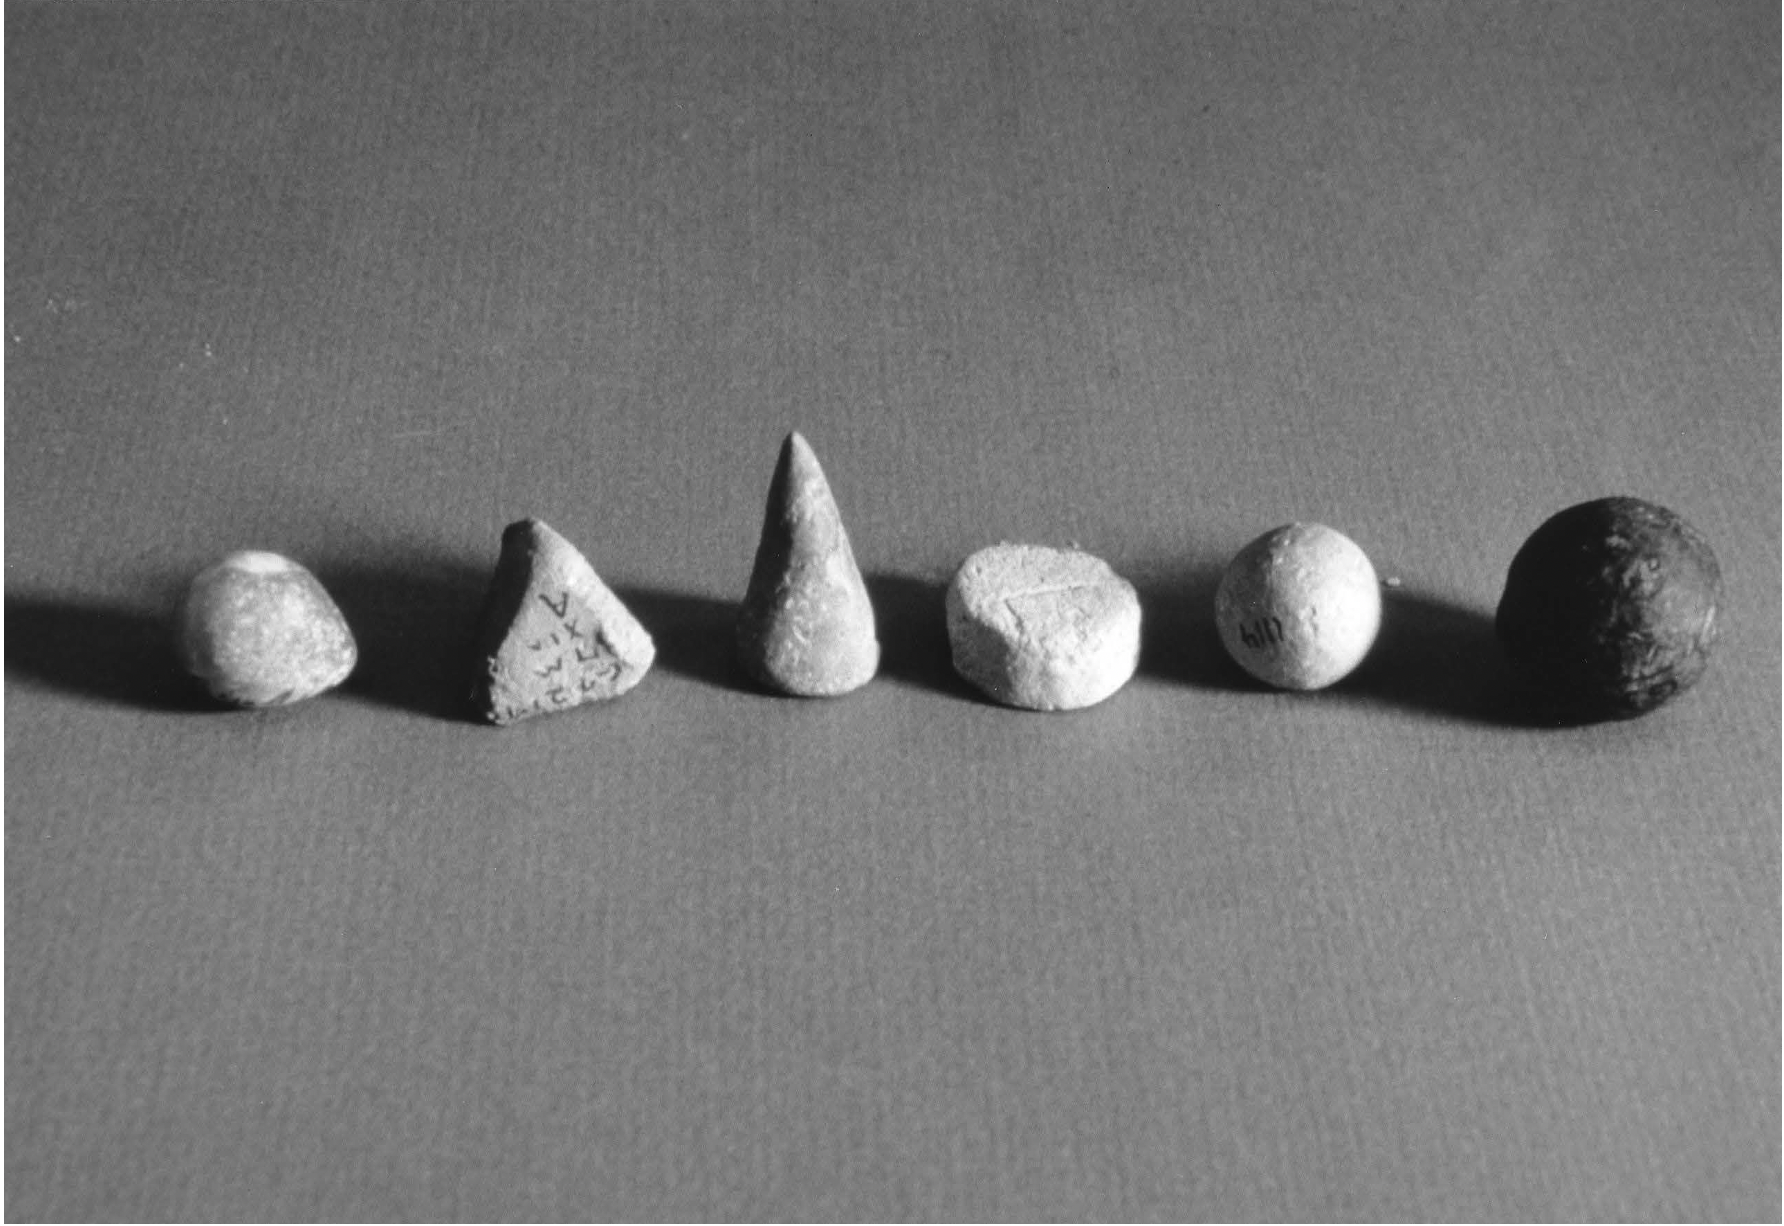 Photograph of 6 tokens in various shapes.